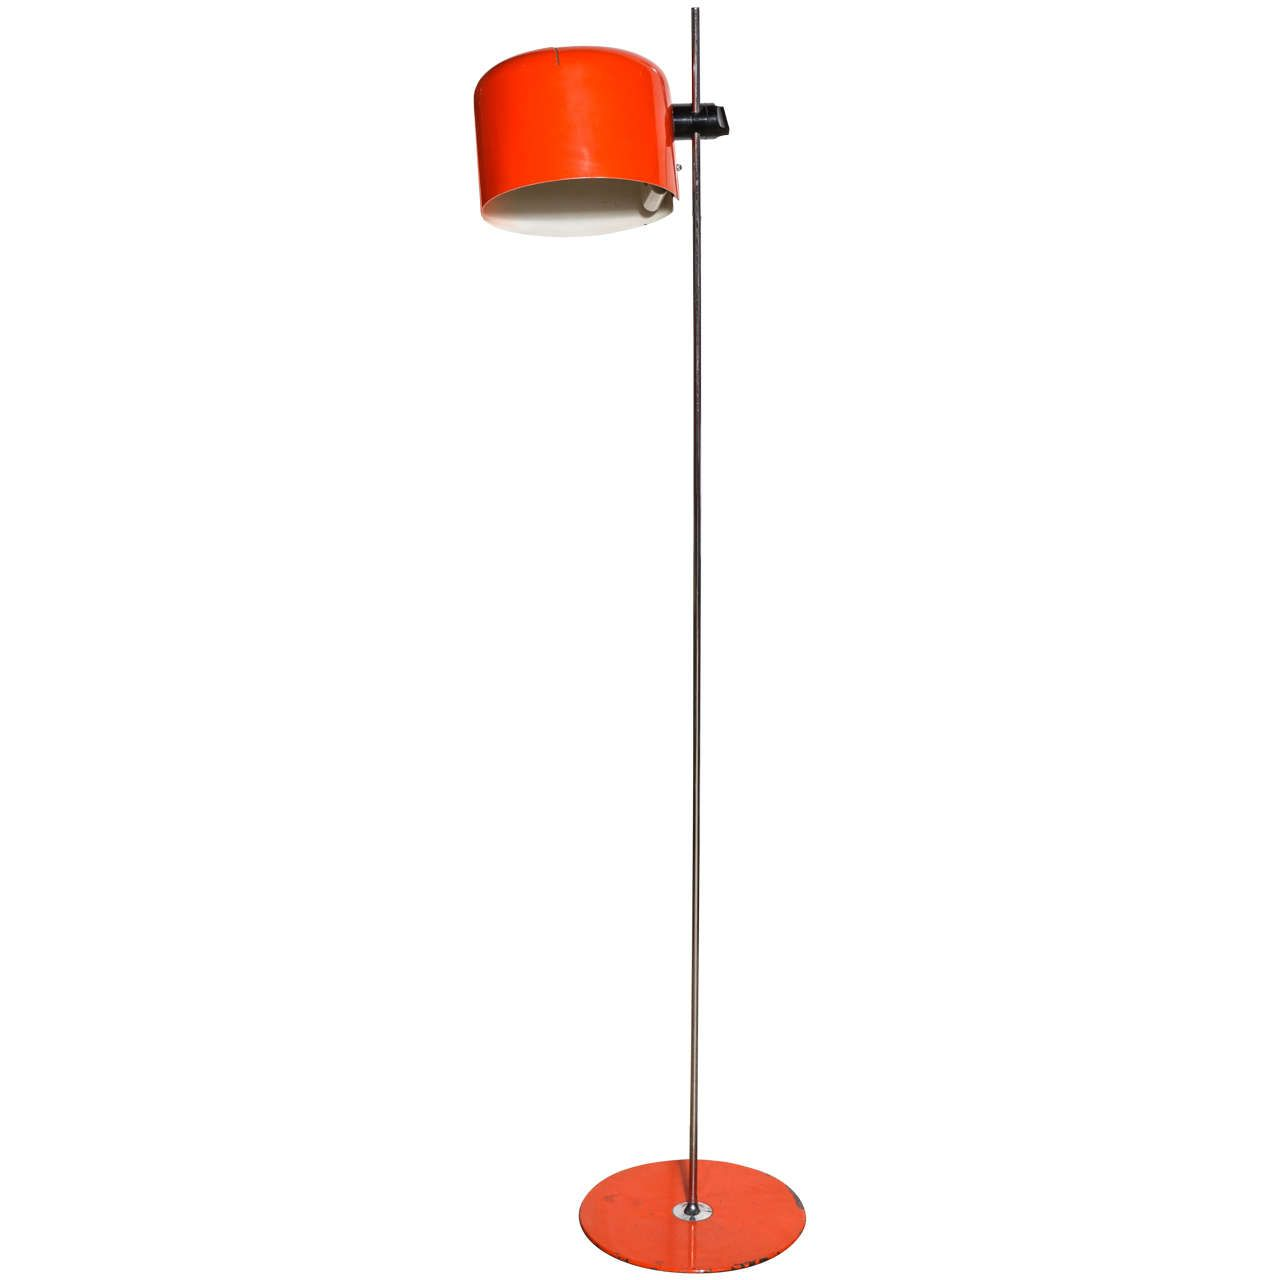 Joe Colombo Adjustable Orange Coupe Floor Lamp From A Unique